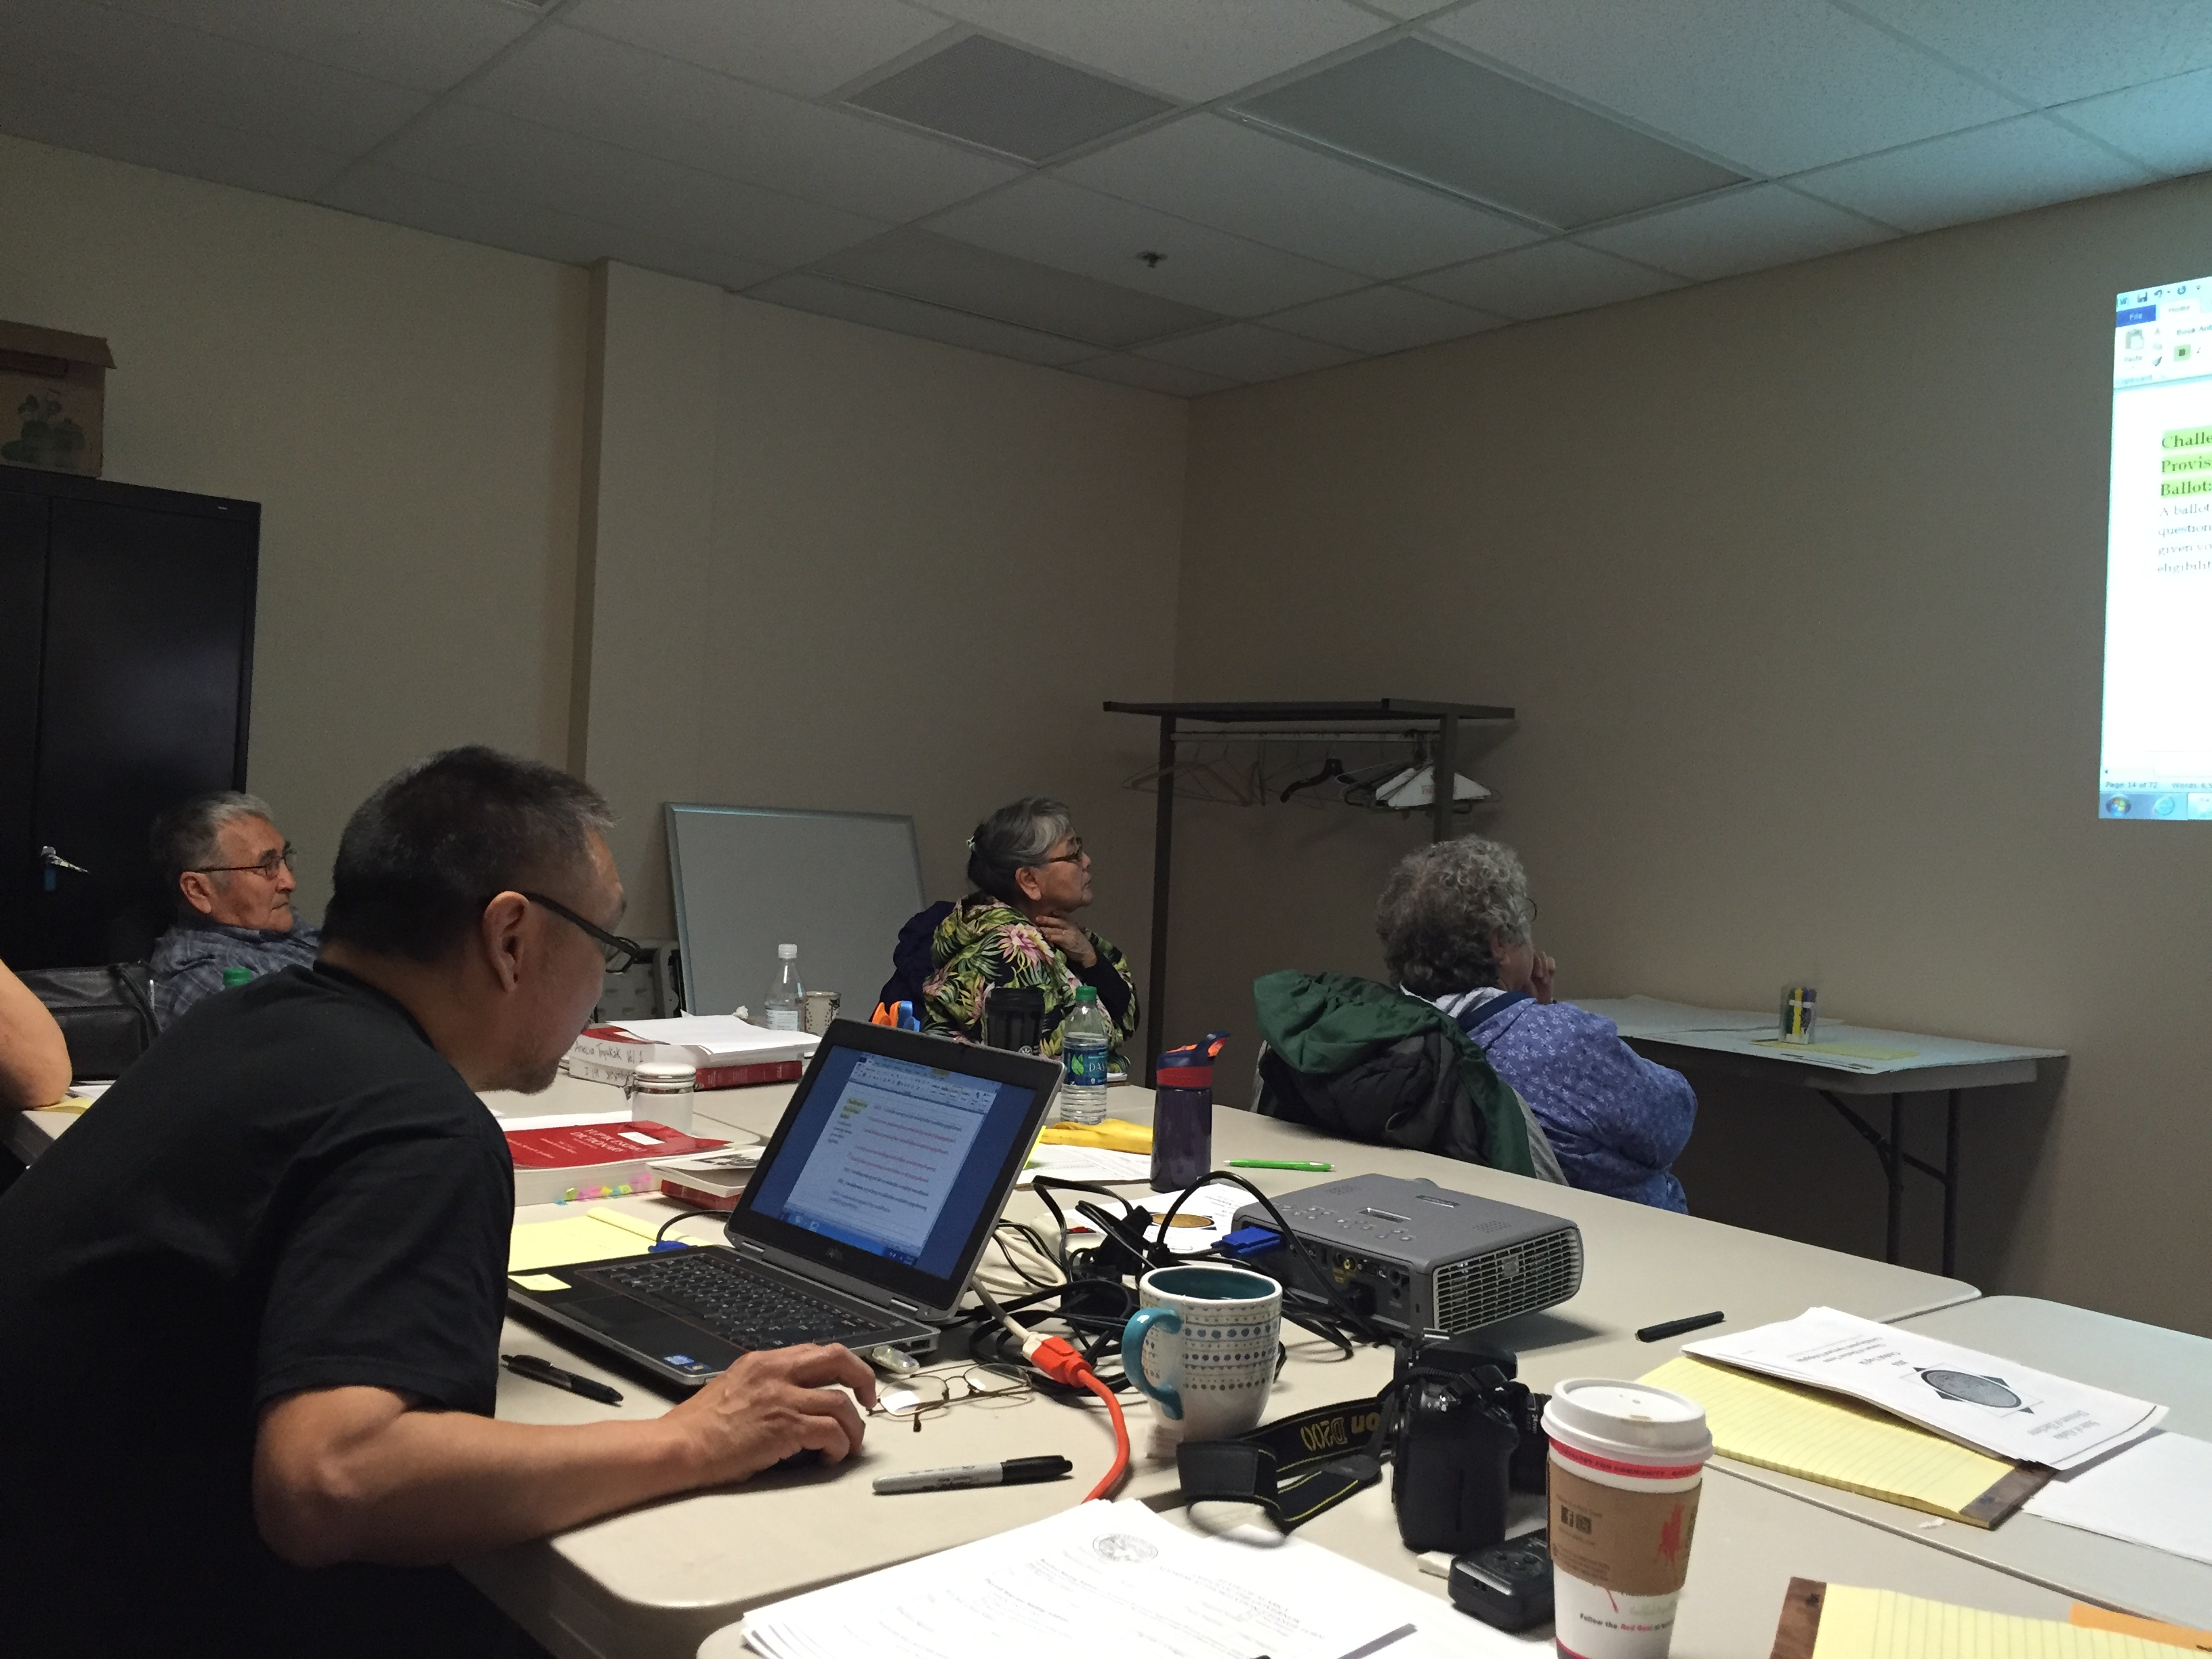 A group of Yup'ik translators meet to develop a glossary of election terms in Yup'ik. (Photo by Anne Hillman/KSKA)